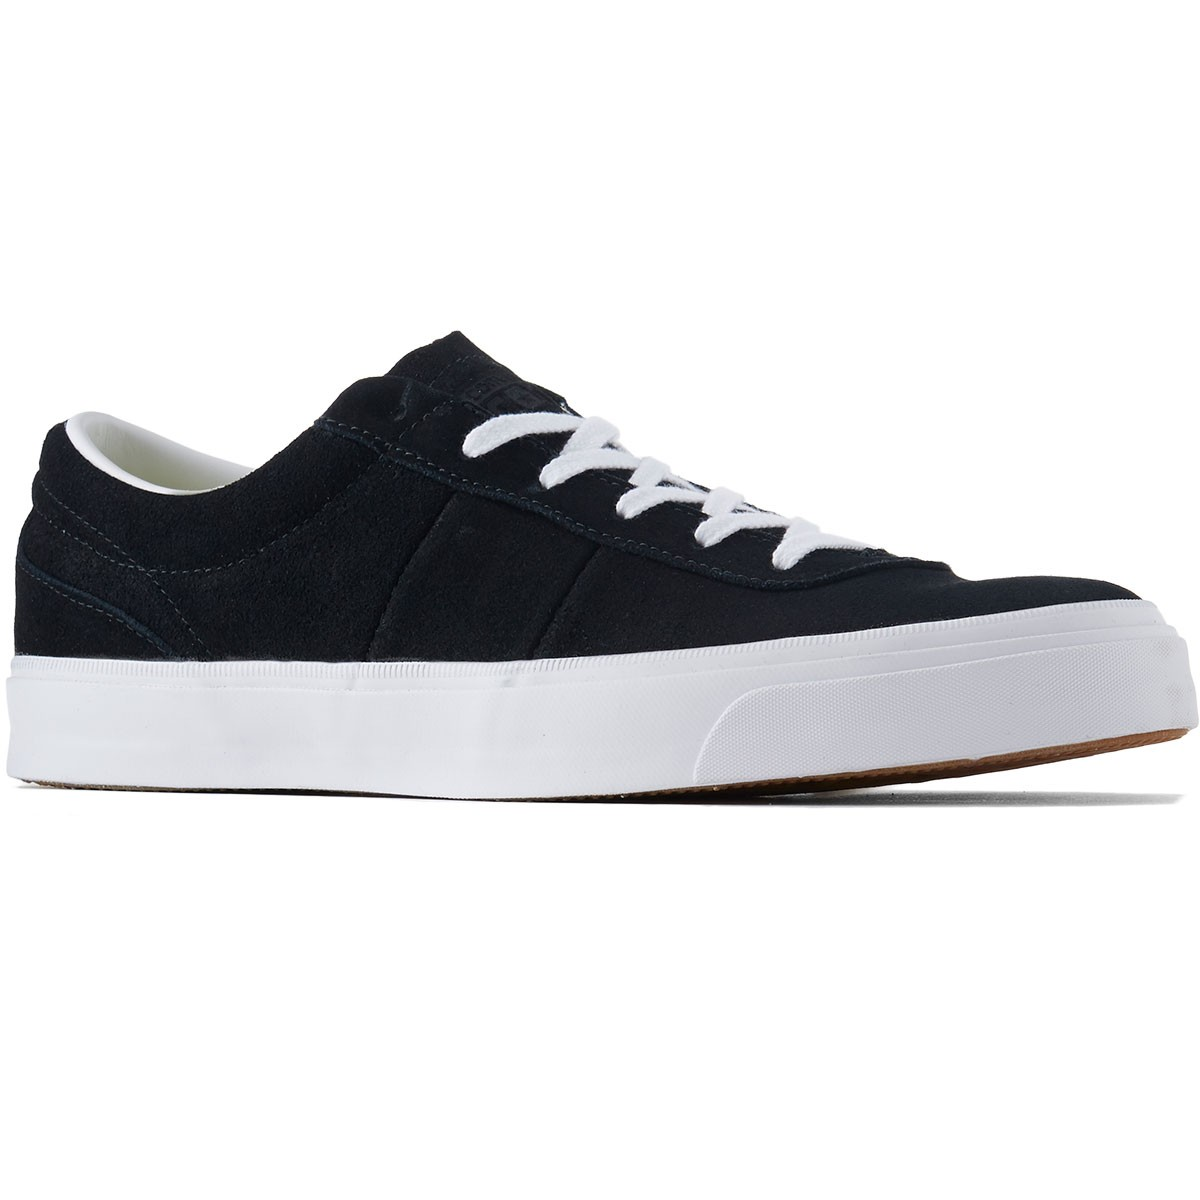 23dc2a2cb31a Converse One Star CC Pro OX Suede Shoes - Black White White - 8.0